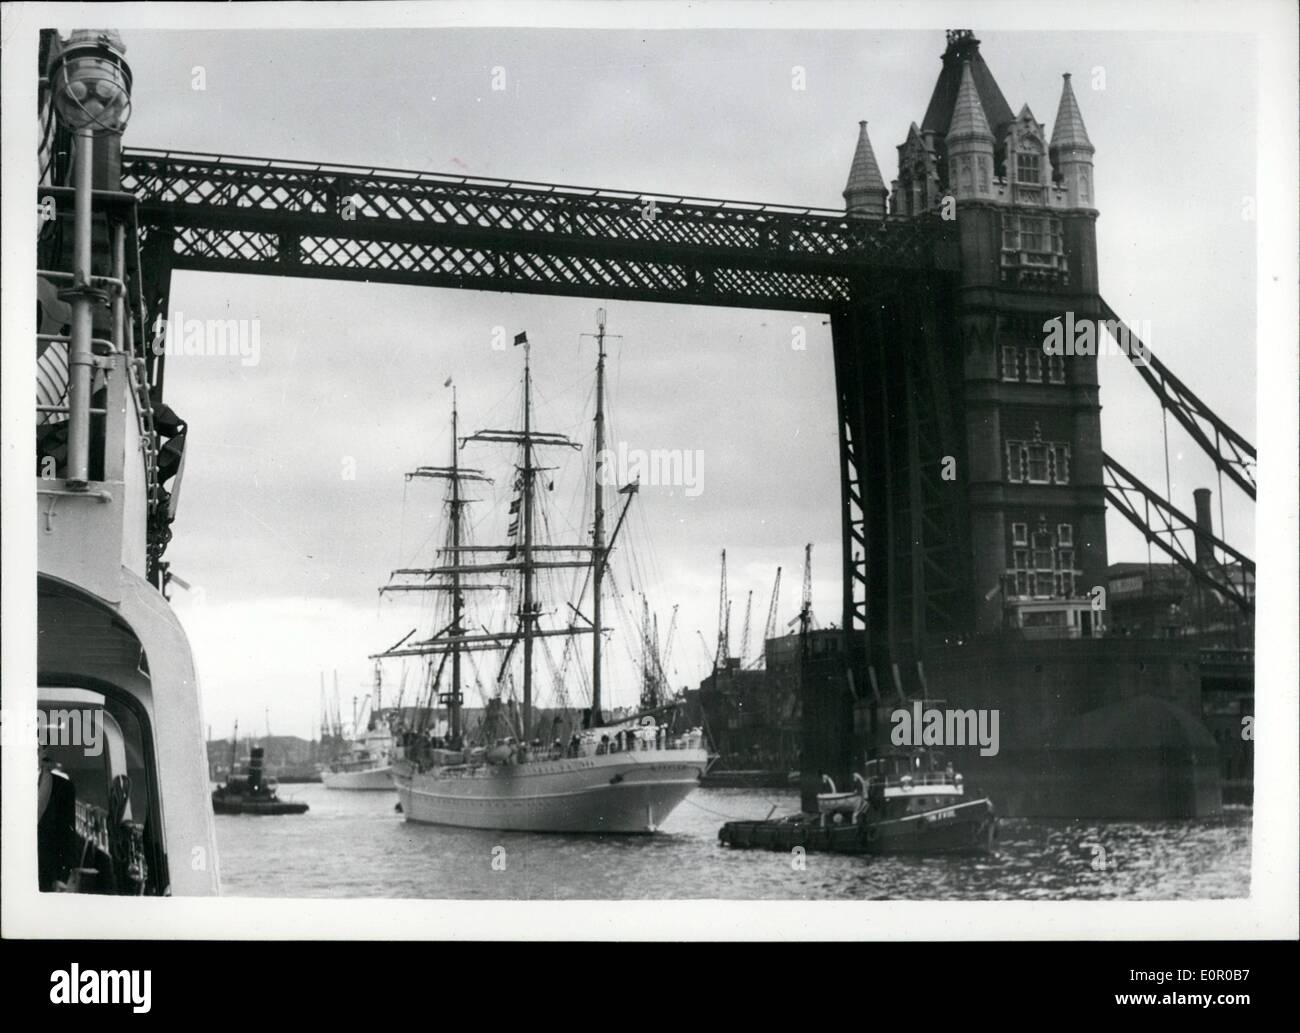 Jul. 07, 1957 - American training barque ''Eagle'' arrives in the Thames - The American Coastguard Practice Squadron flagship Eagle with 350 Cadets aboard arrived in the Thames last evening . They are on their annual nine weeks cruise and the vessel is moored near Tower Bridge . The sailing ship is the old Nazi Cadet ship ''Horst Wessel'' taken over as reparations . The 51 ft. mast of the ship had to be lowered by 14 ft. before she could pass under the top span of Tower Bridge. - Stock Image